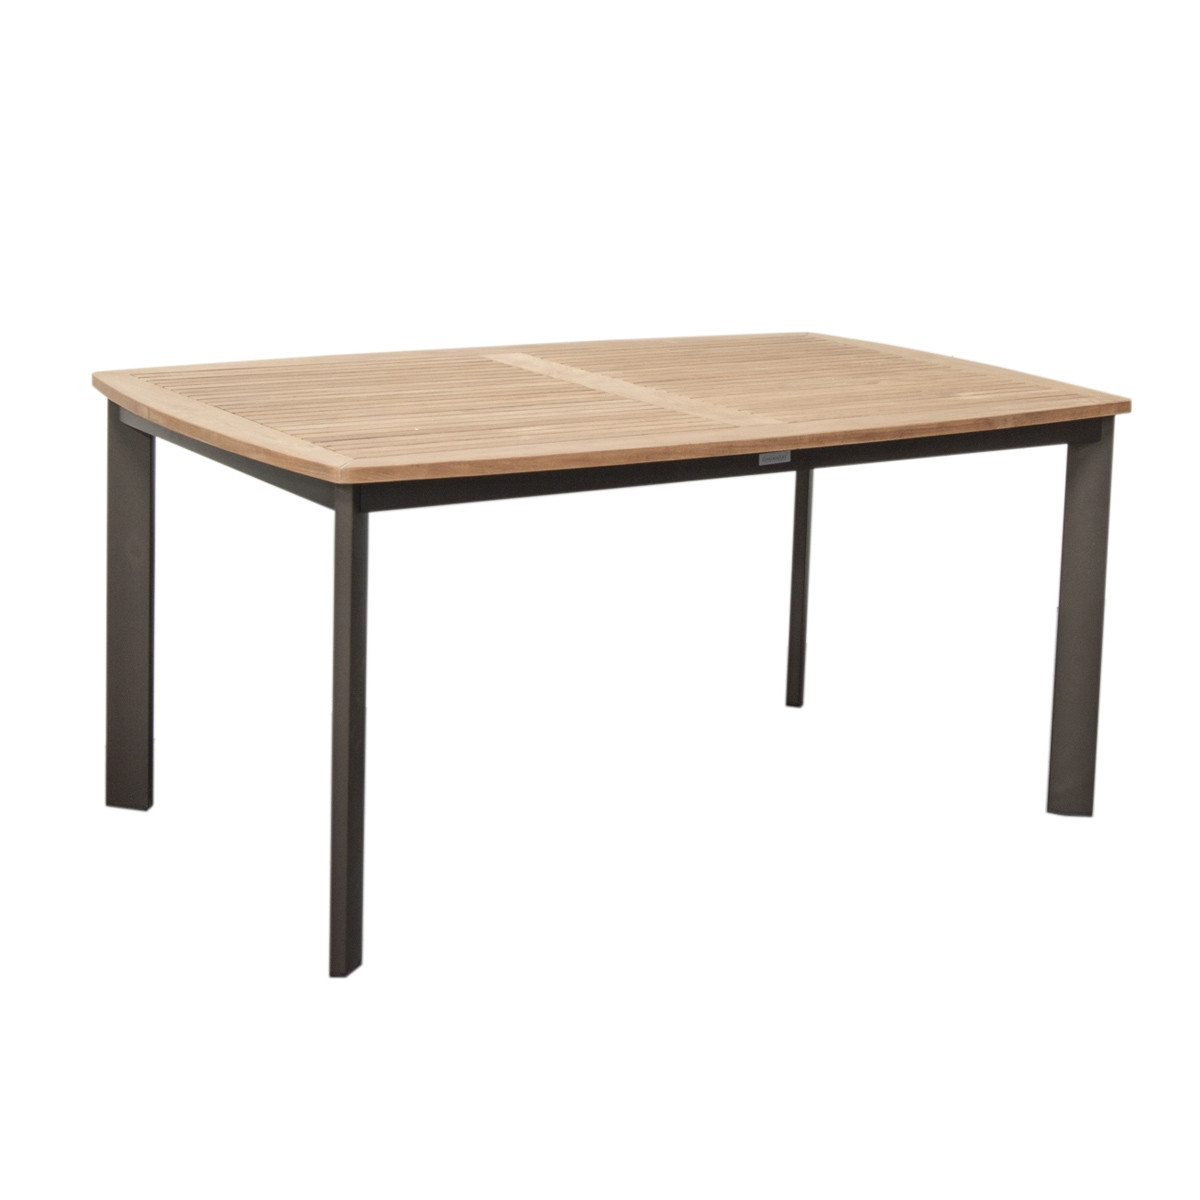 Table de jardin en aluminium teck neo tresi zendart design - Table de jardin design ...